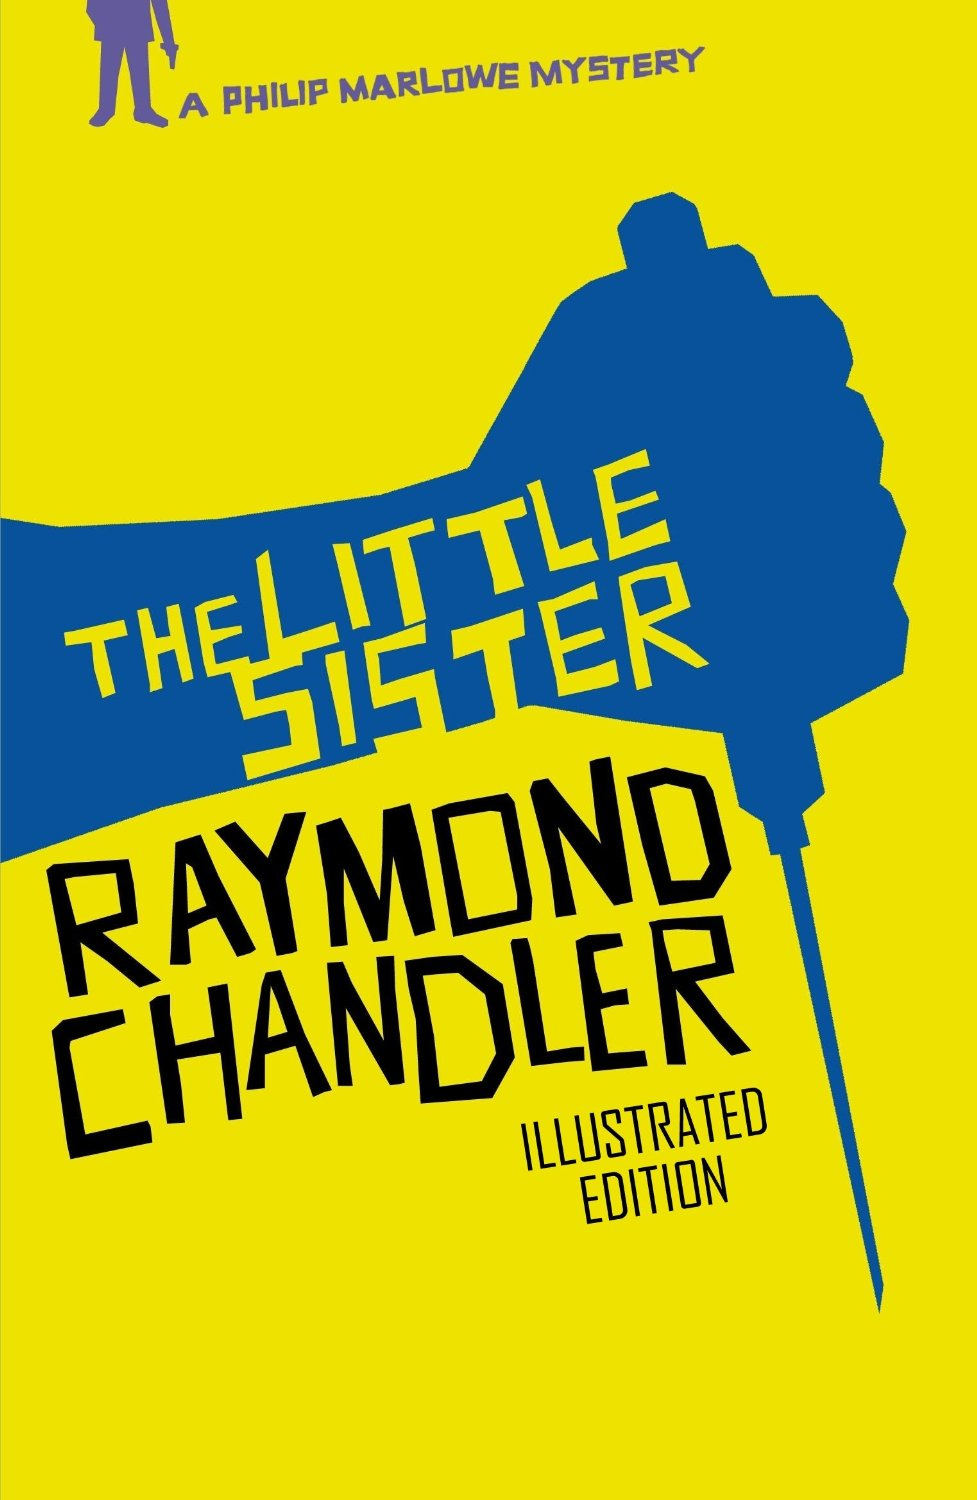 Raymond Chandler book cover - the little sister